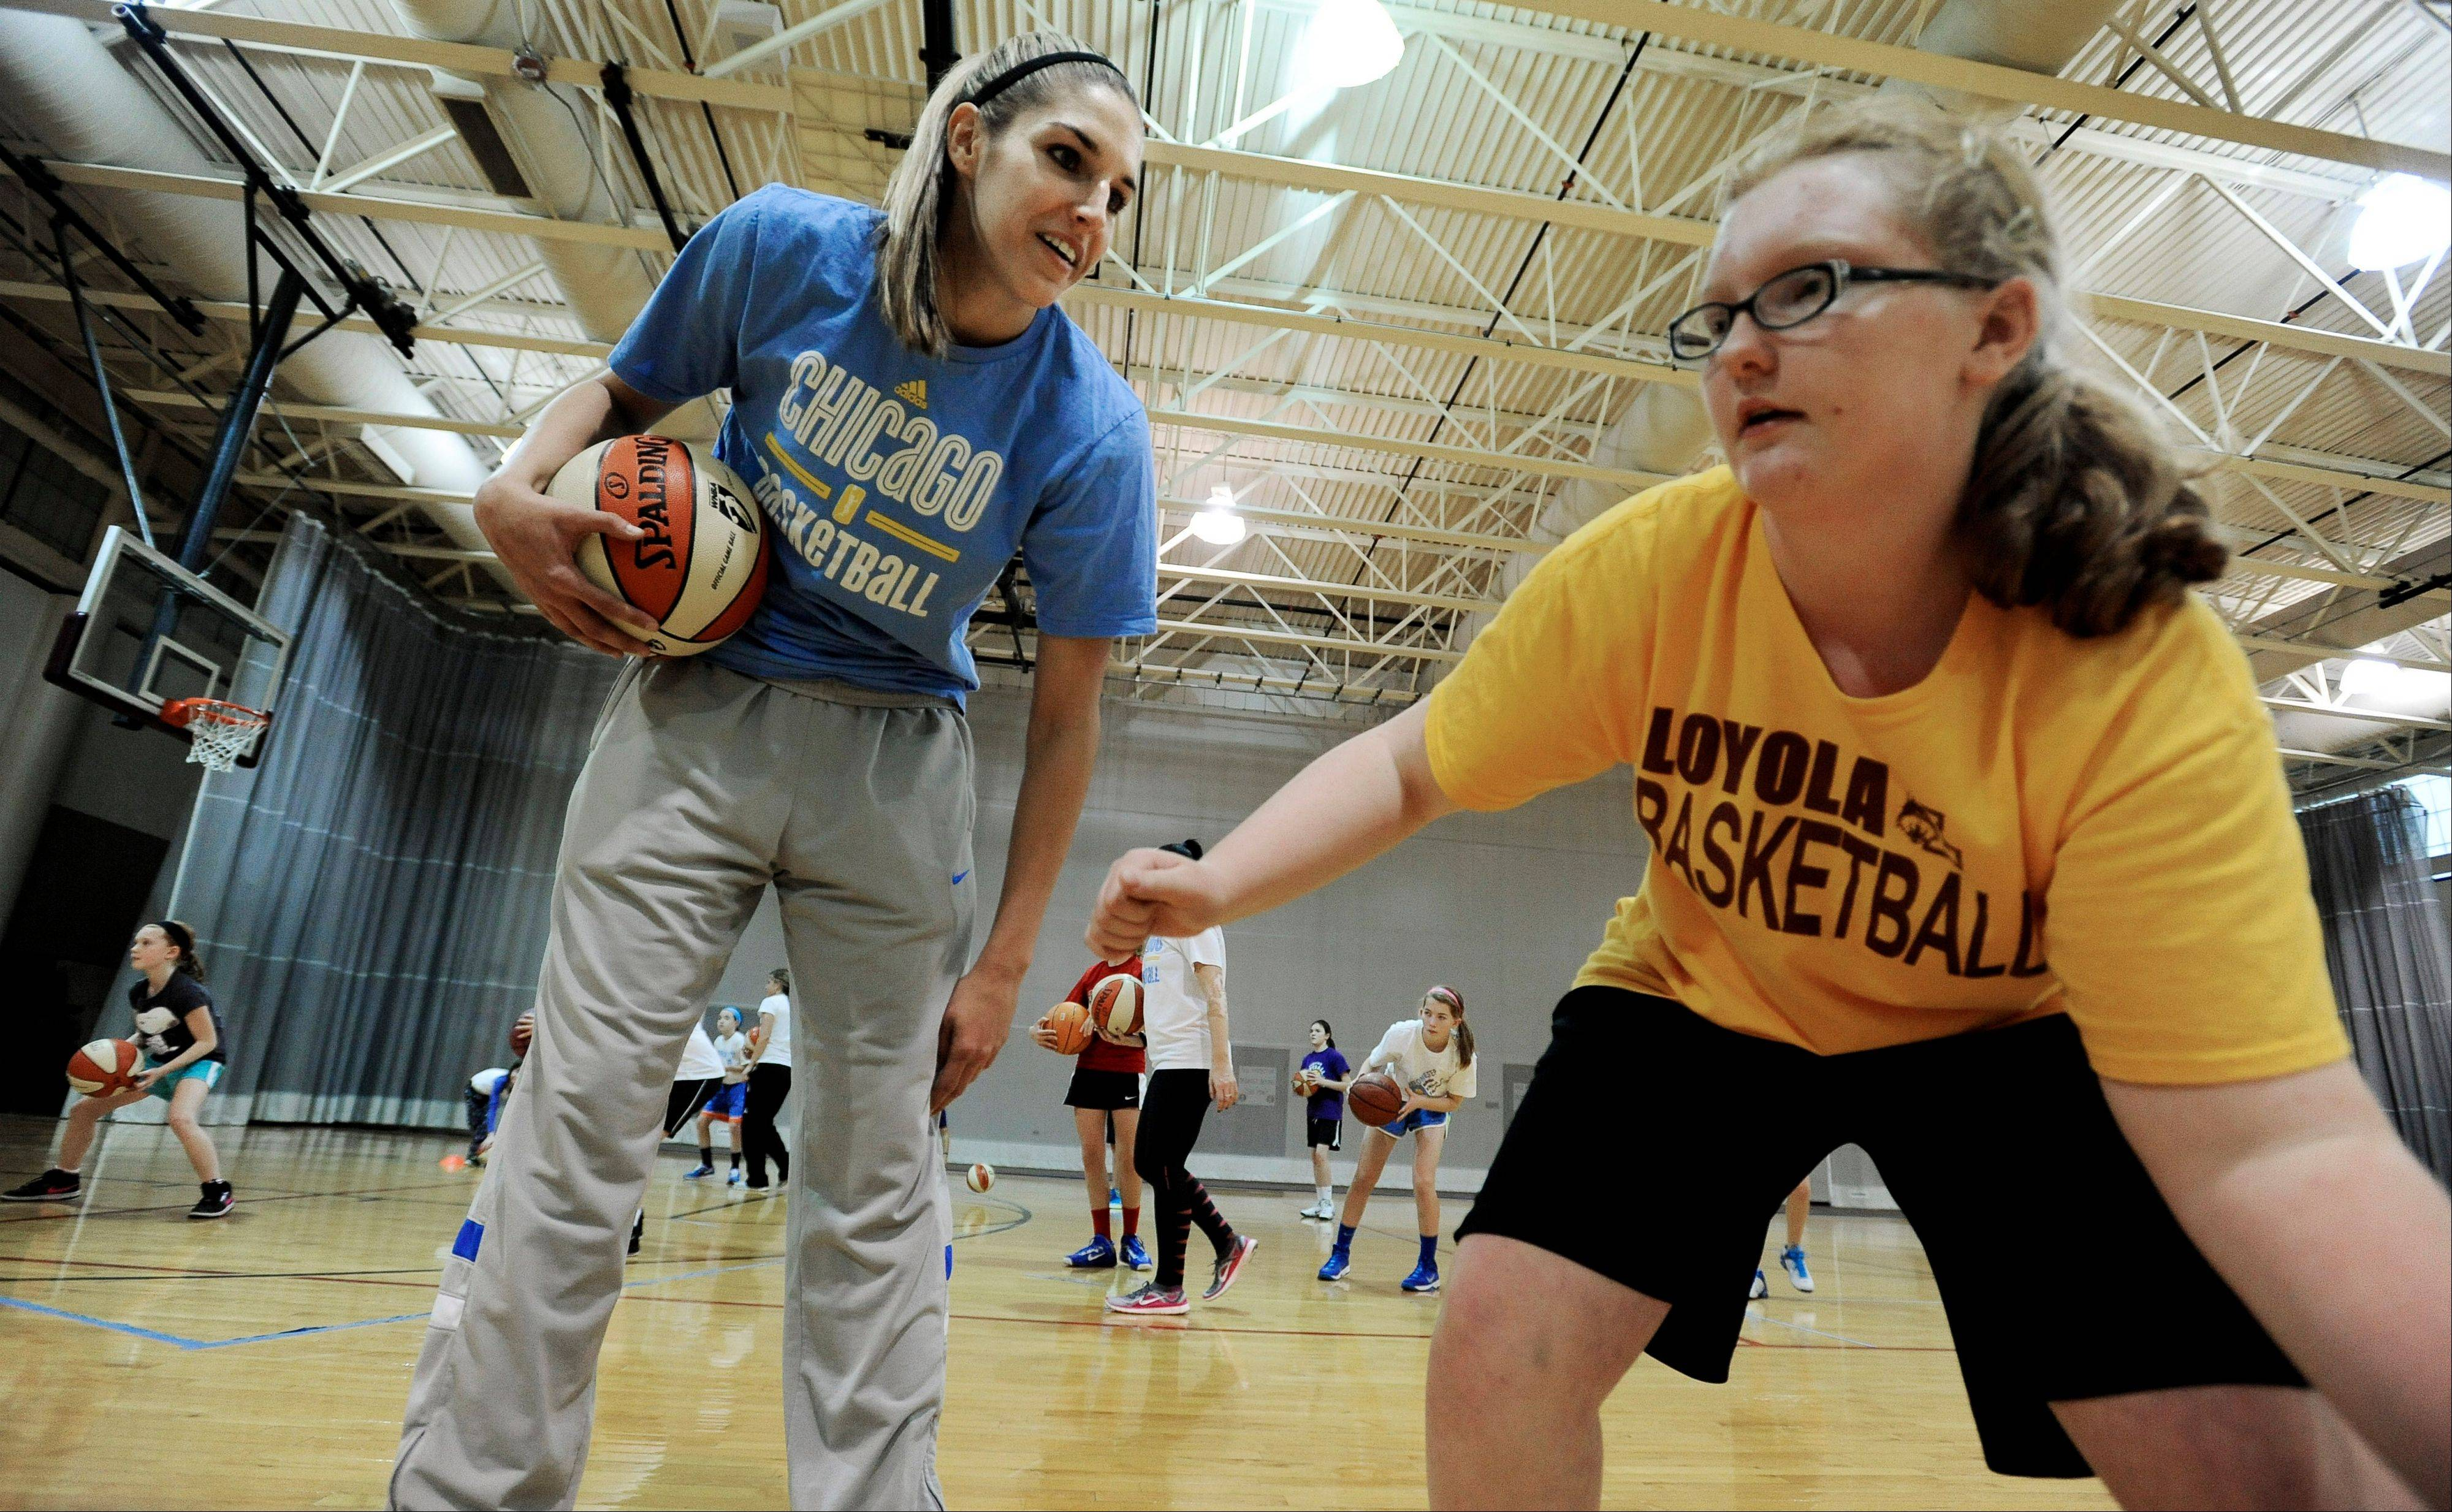 WNBA basketball player Elena Delle Donne of the Chicago Sky has spent a lot of her offseason working with kids at clinics like this one held at Loyola University Chicago. While helping grow the Sky brand, Donne also has a new role as global ambassador for Special Olympics.